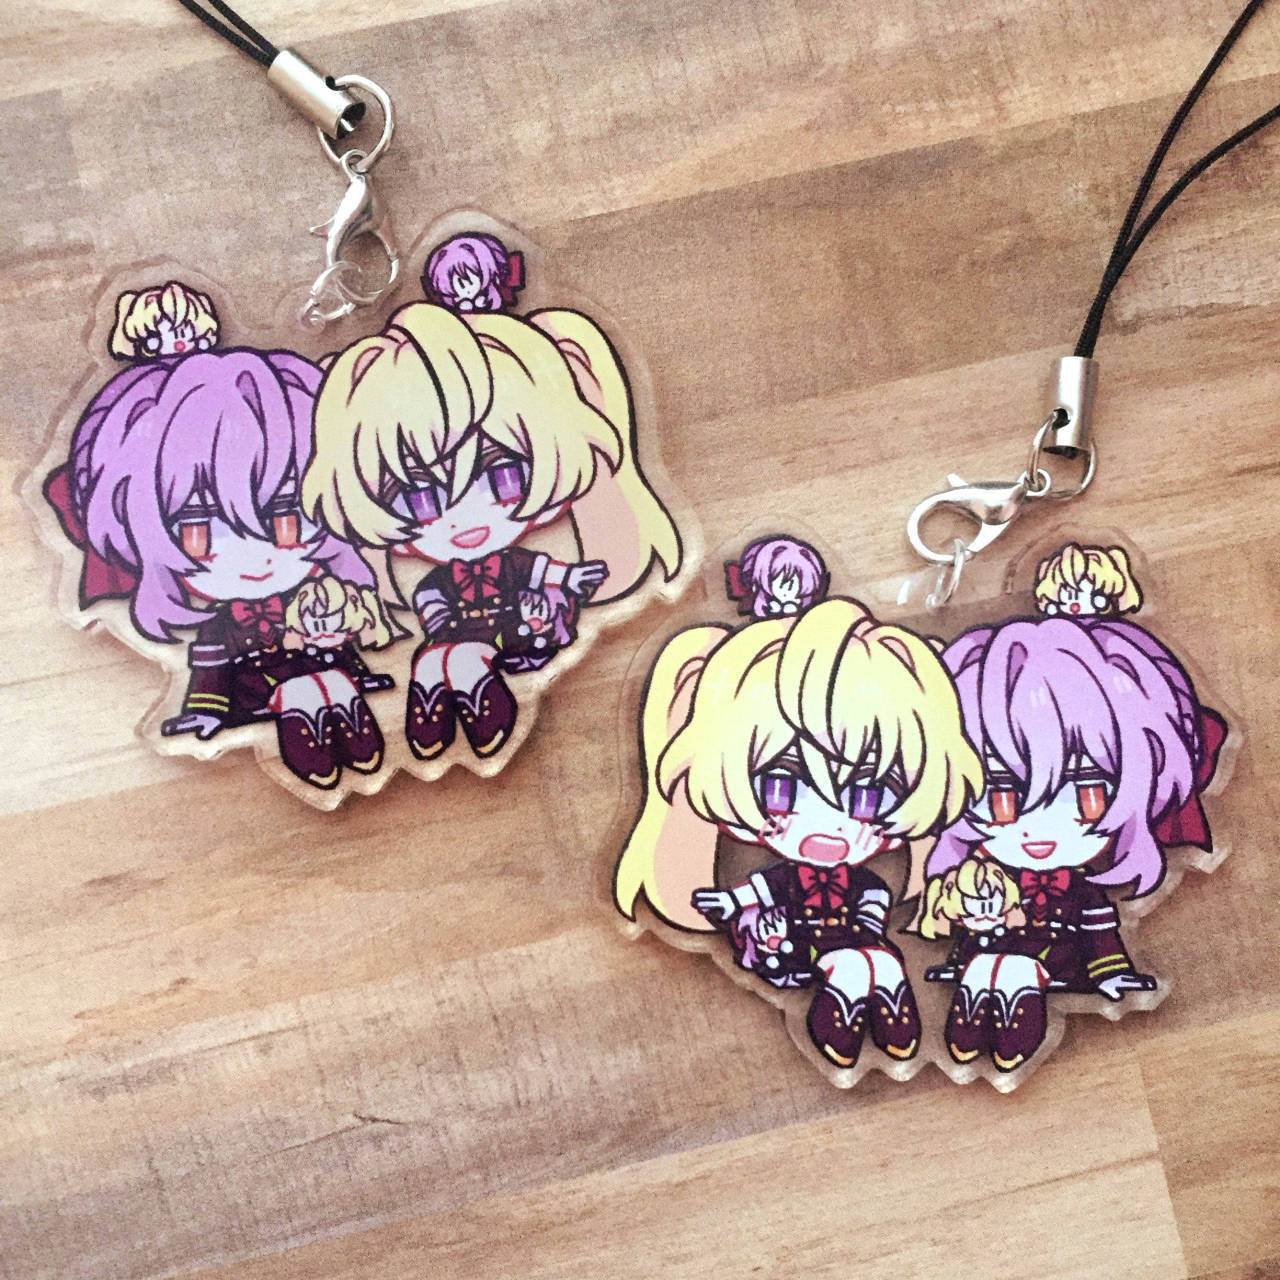 "CHARMS HEREEE— & added to store, link in bio ∠( ᐛ 」∠)_ I'll have GureShin & some E7 in my next order. The general time estimate is vague but the next time Zap has a sale on clear charms + 2 months for production and delivery :'D I SAID BEFORE I'D ASK, SO NOW I ASK— Would anyone be interested in yuunoa or yuuyoi charms? Please let me know. I have 1 desperate yuuyoi person who would ""buy my whole stock of yuuyoi"" if they had to, quoting their words— and I felt that asdfghjk.  #owari no seraph  #seraph of the end #mitsunoa #tales of the abyss #anise tatlin#shinoa hiiragi#mitsuba sangu#berusona#beru merch #but also actual beru as merch  #no idea why ud want me  #but i exist"